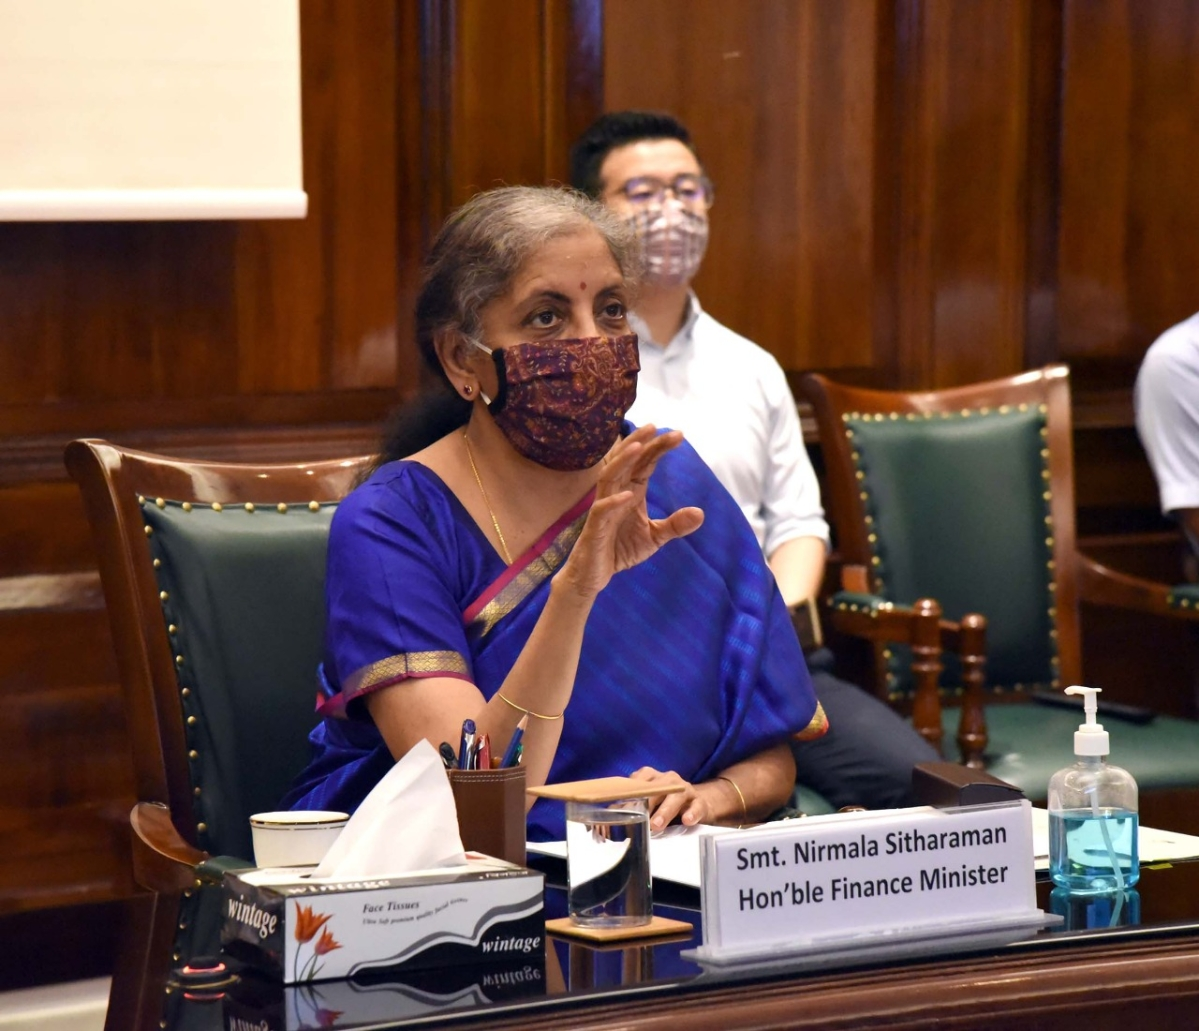 'Haven't closed option for another stimulus': Sitharaman on economic situation amid pandemic